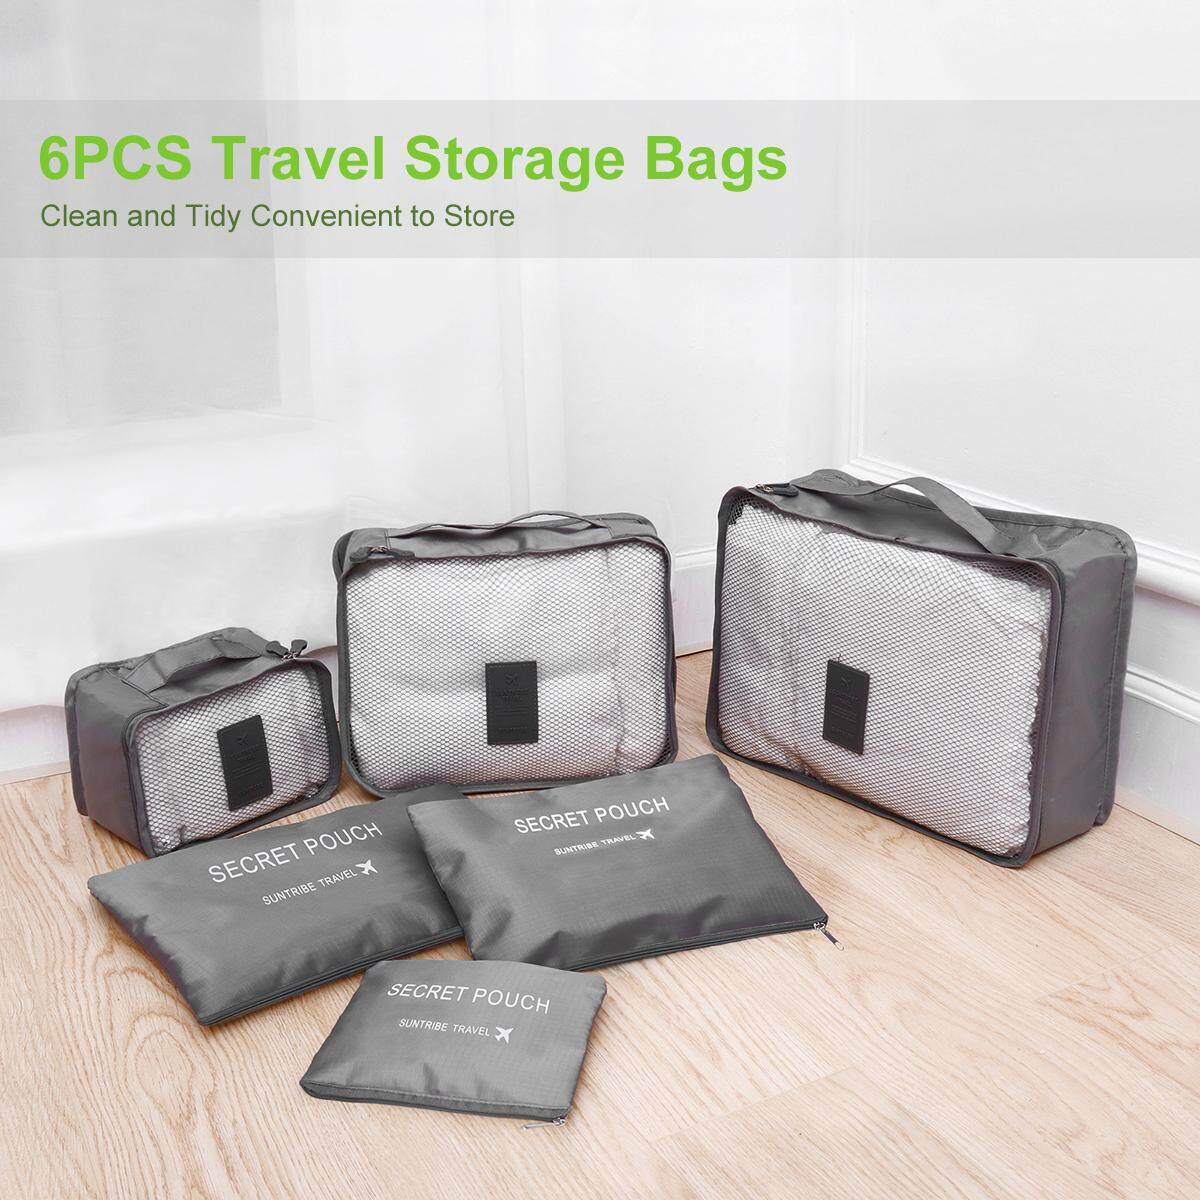 VORCOOL 6 in 1 Clothes Storage Bags Packing Cube Travel Luggage Organizer Waterproof Storage bag Travel